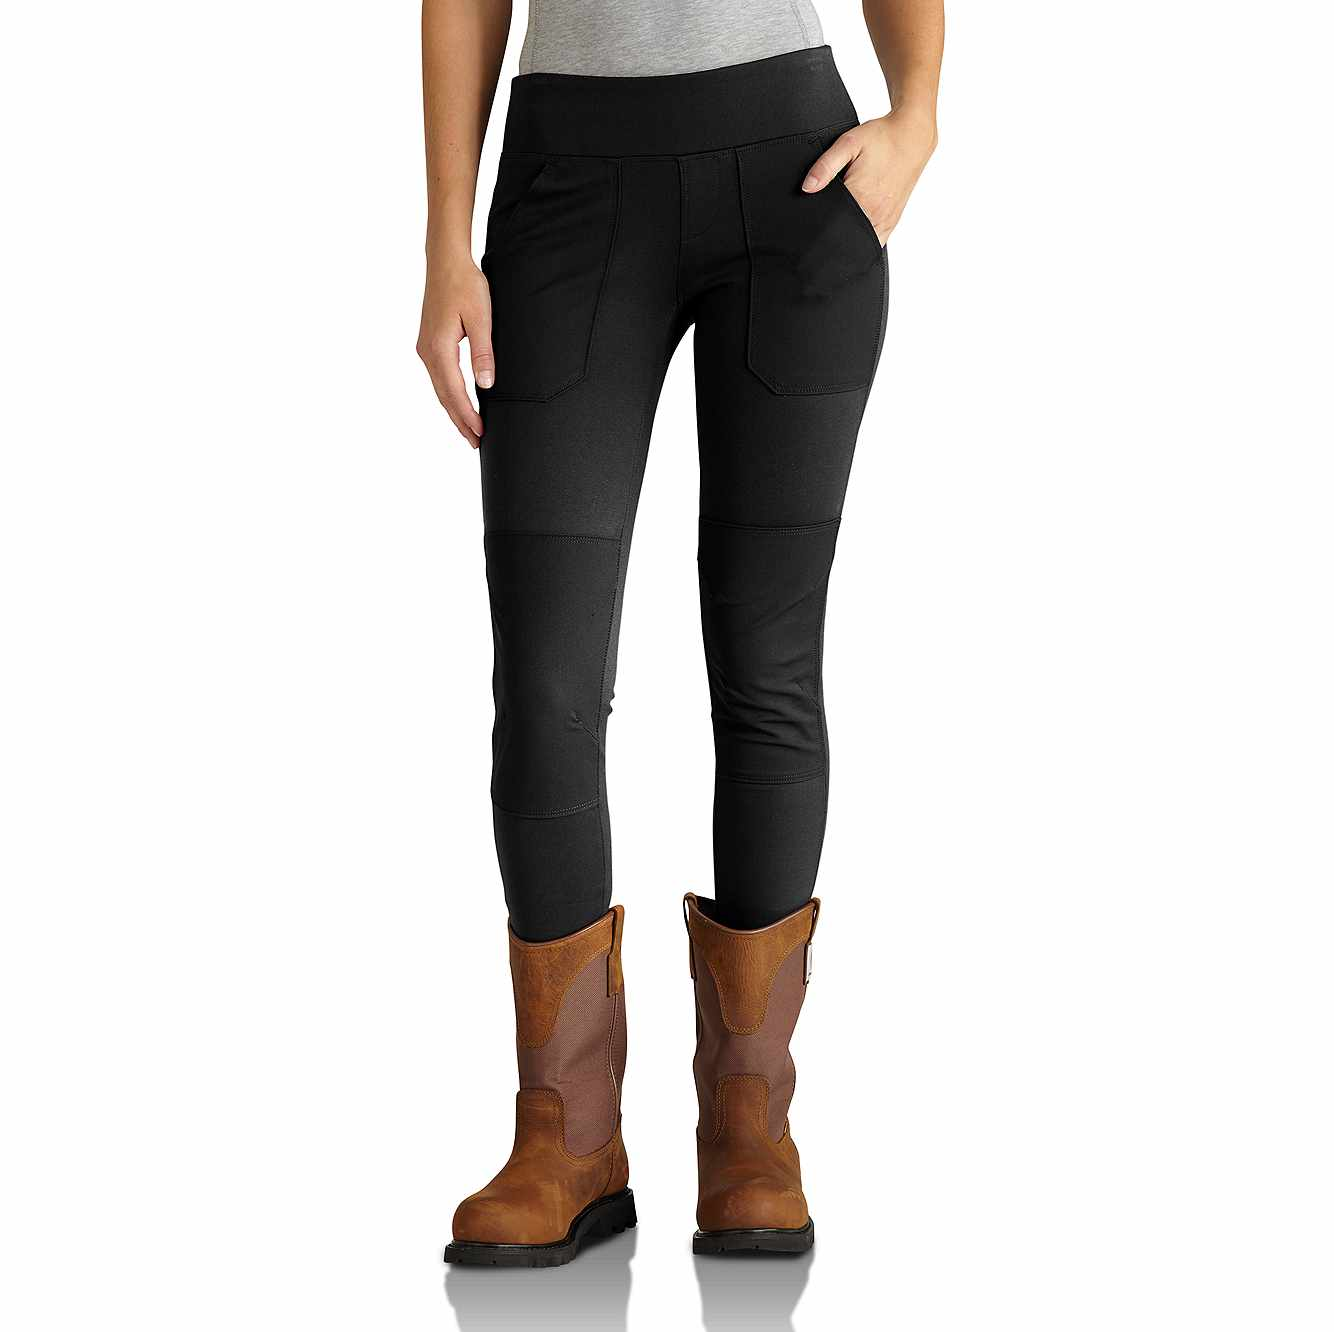 Picture of Carhartt Force® Utility Knit Legging in Black